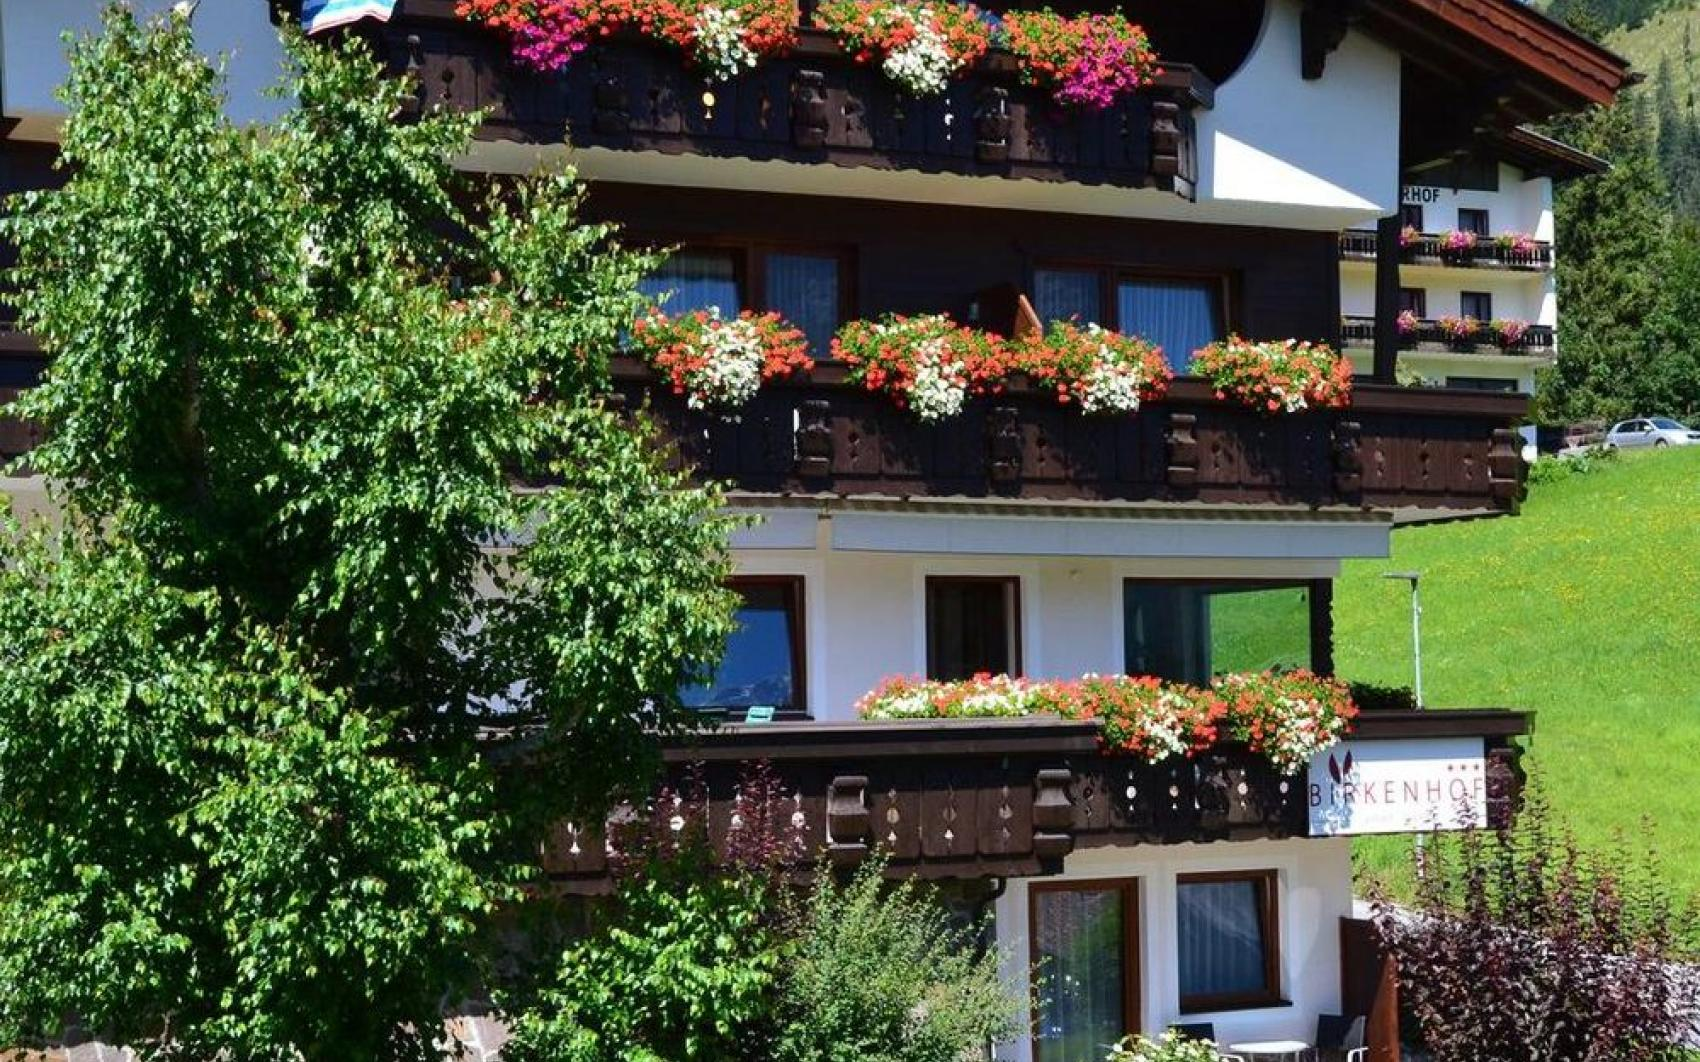 Birkenhof - Premium Appartements & Suites an der Zugspitze *** in 6631 Lermoos